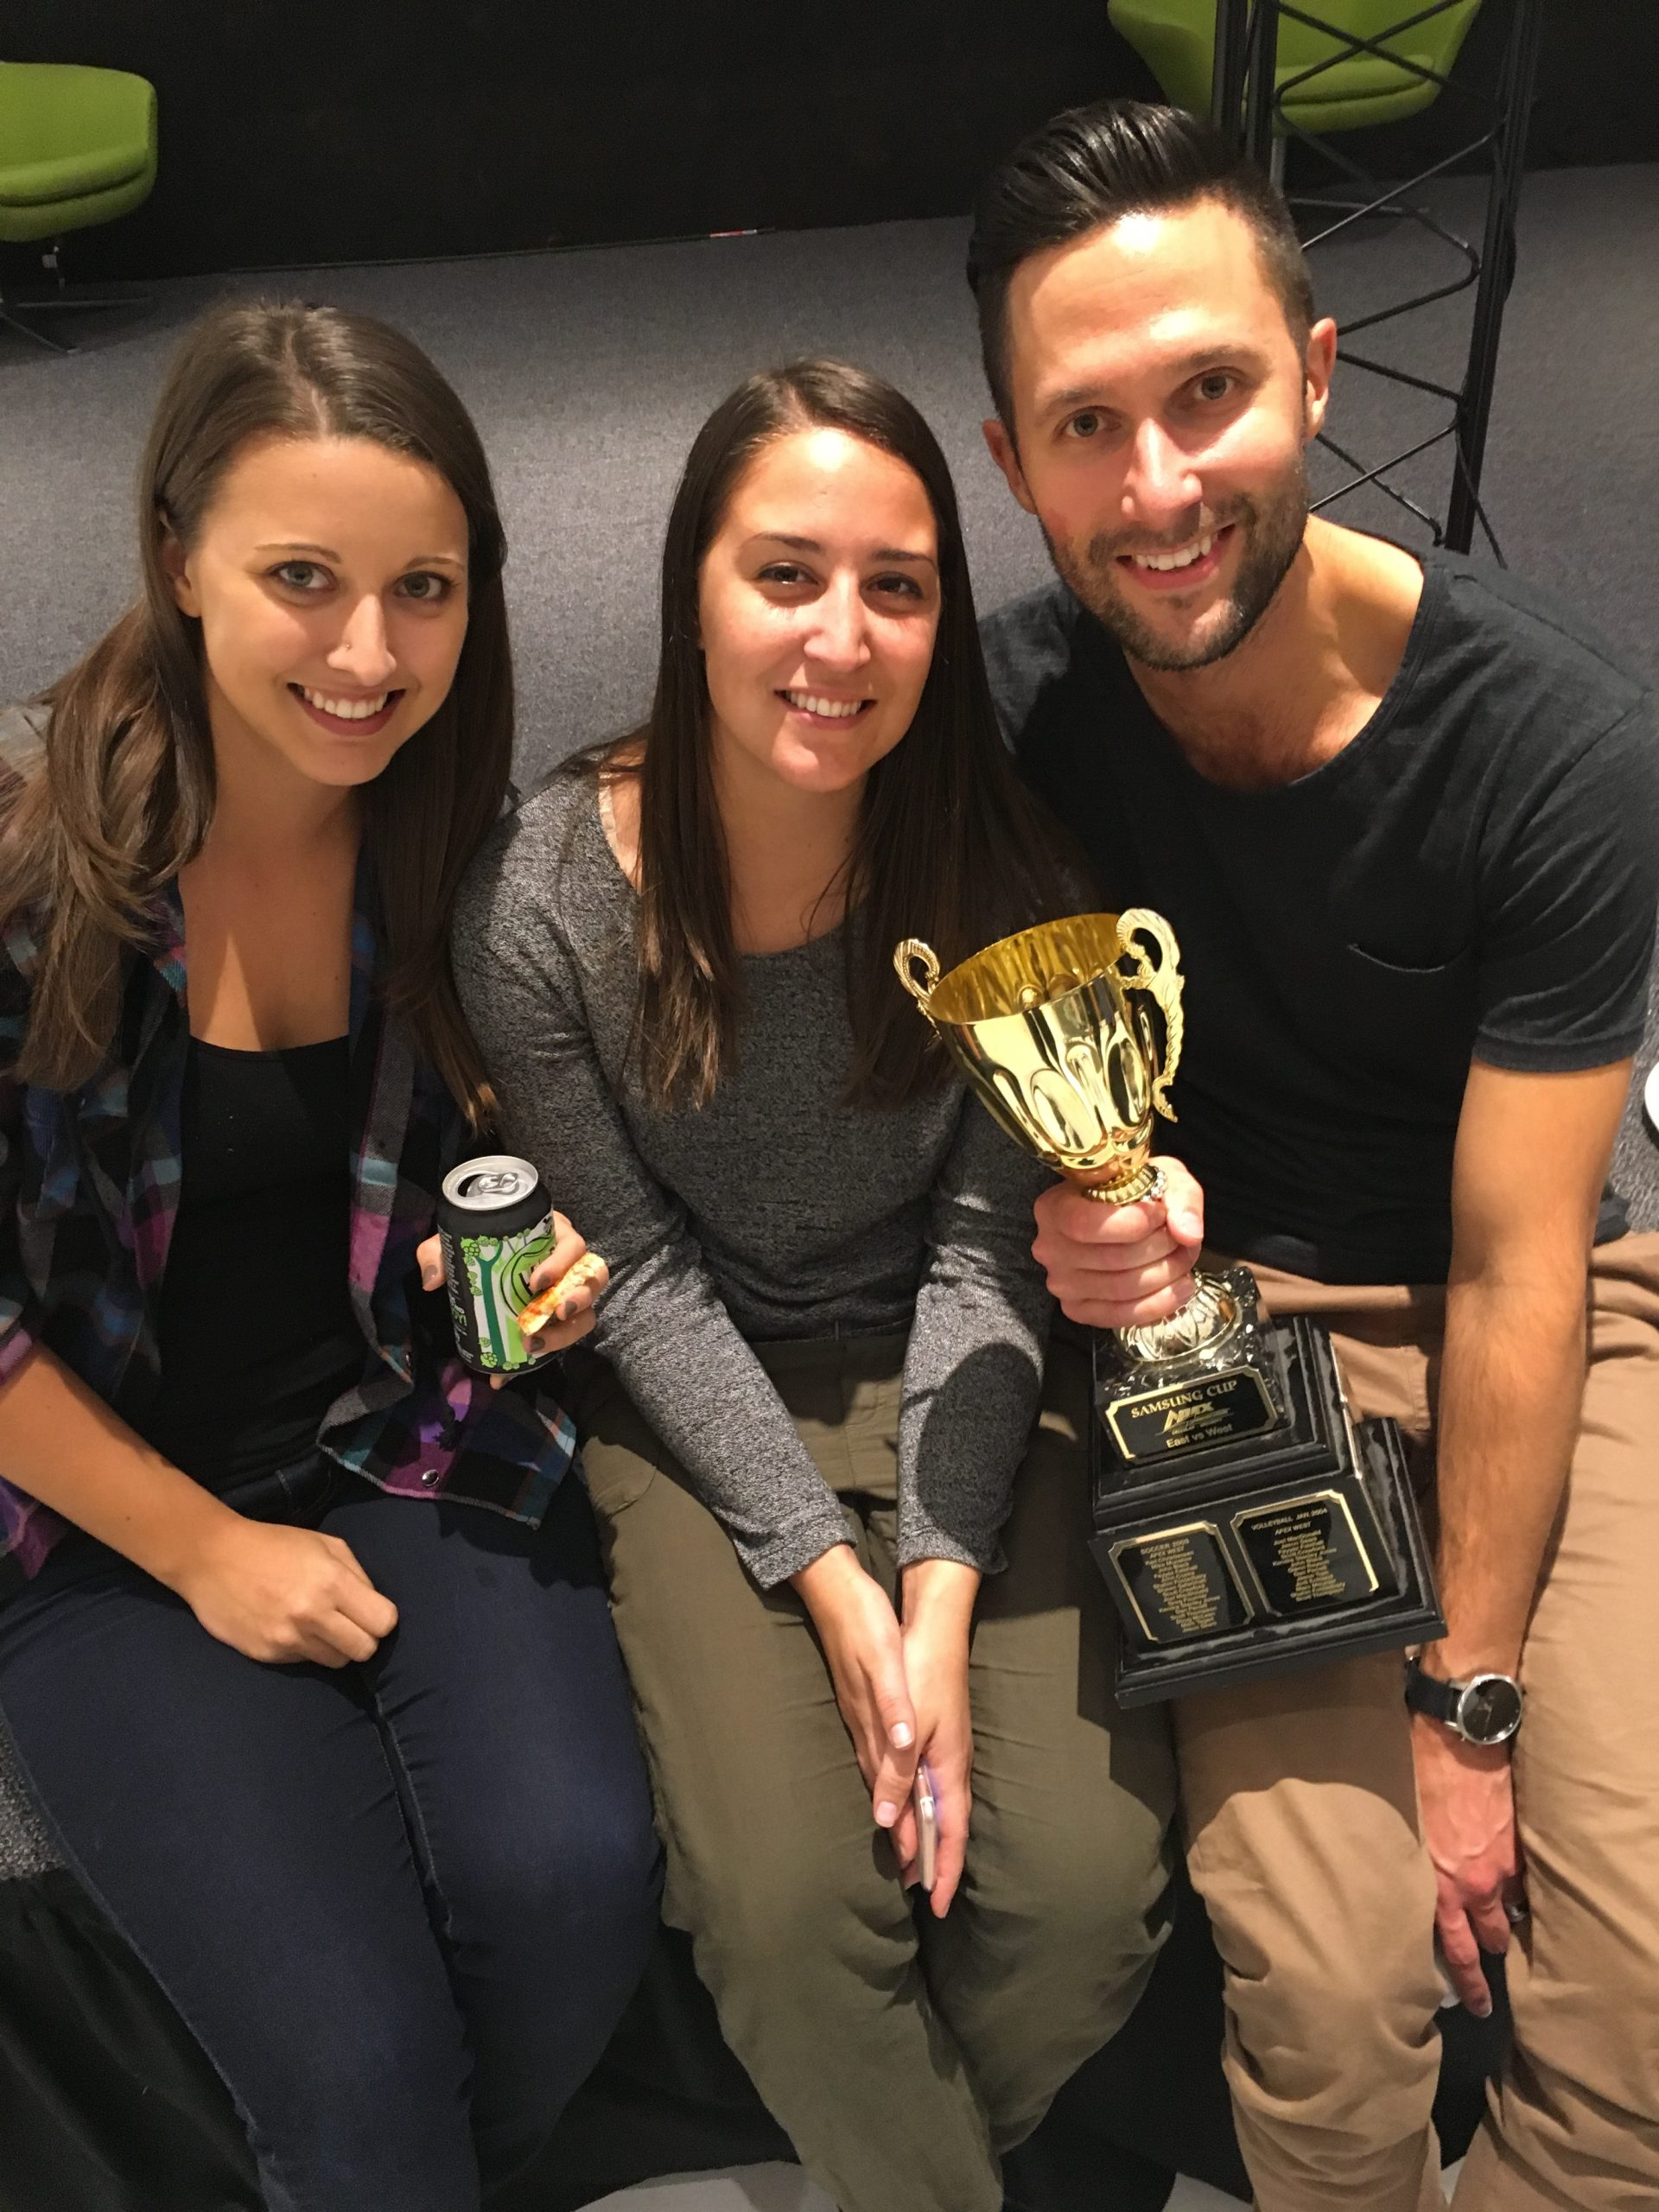 Chad Bennett holding a trophy next to two women